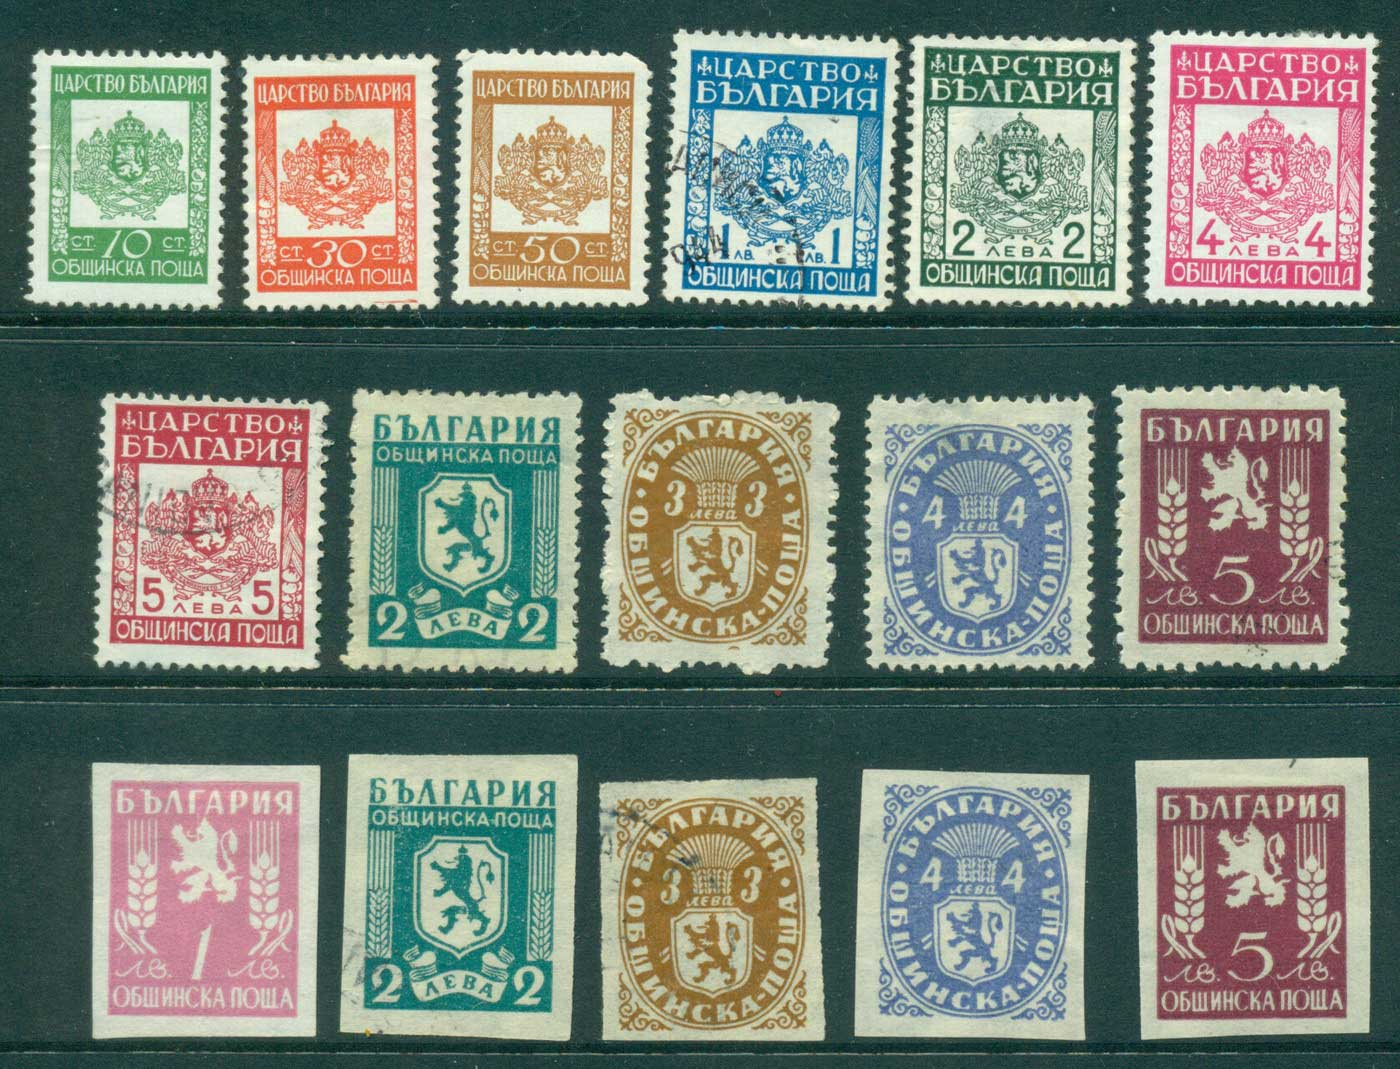 Bulgaria 1944-45 Official Stamps Asst (16) MH/FU lot31377